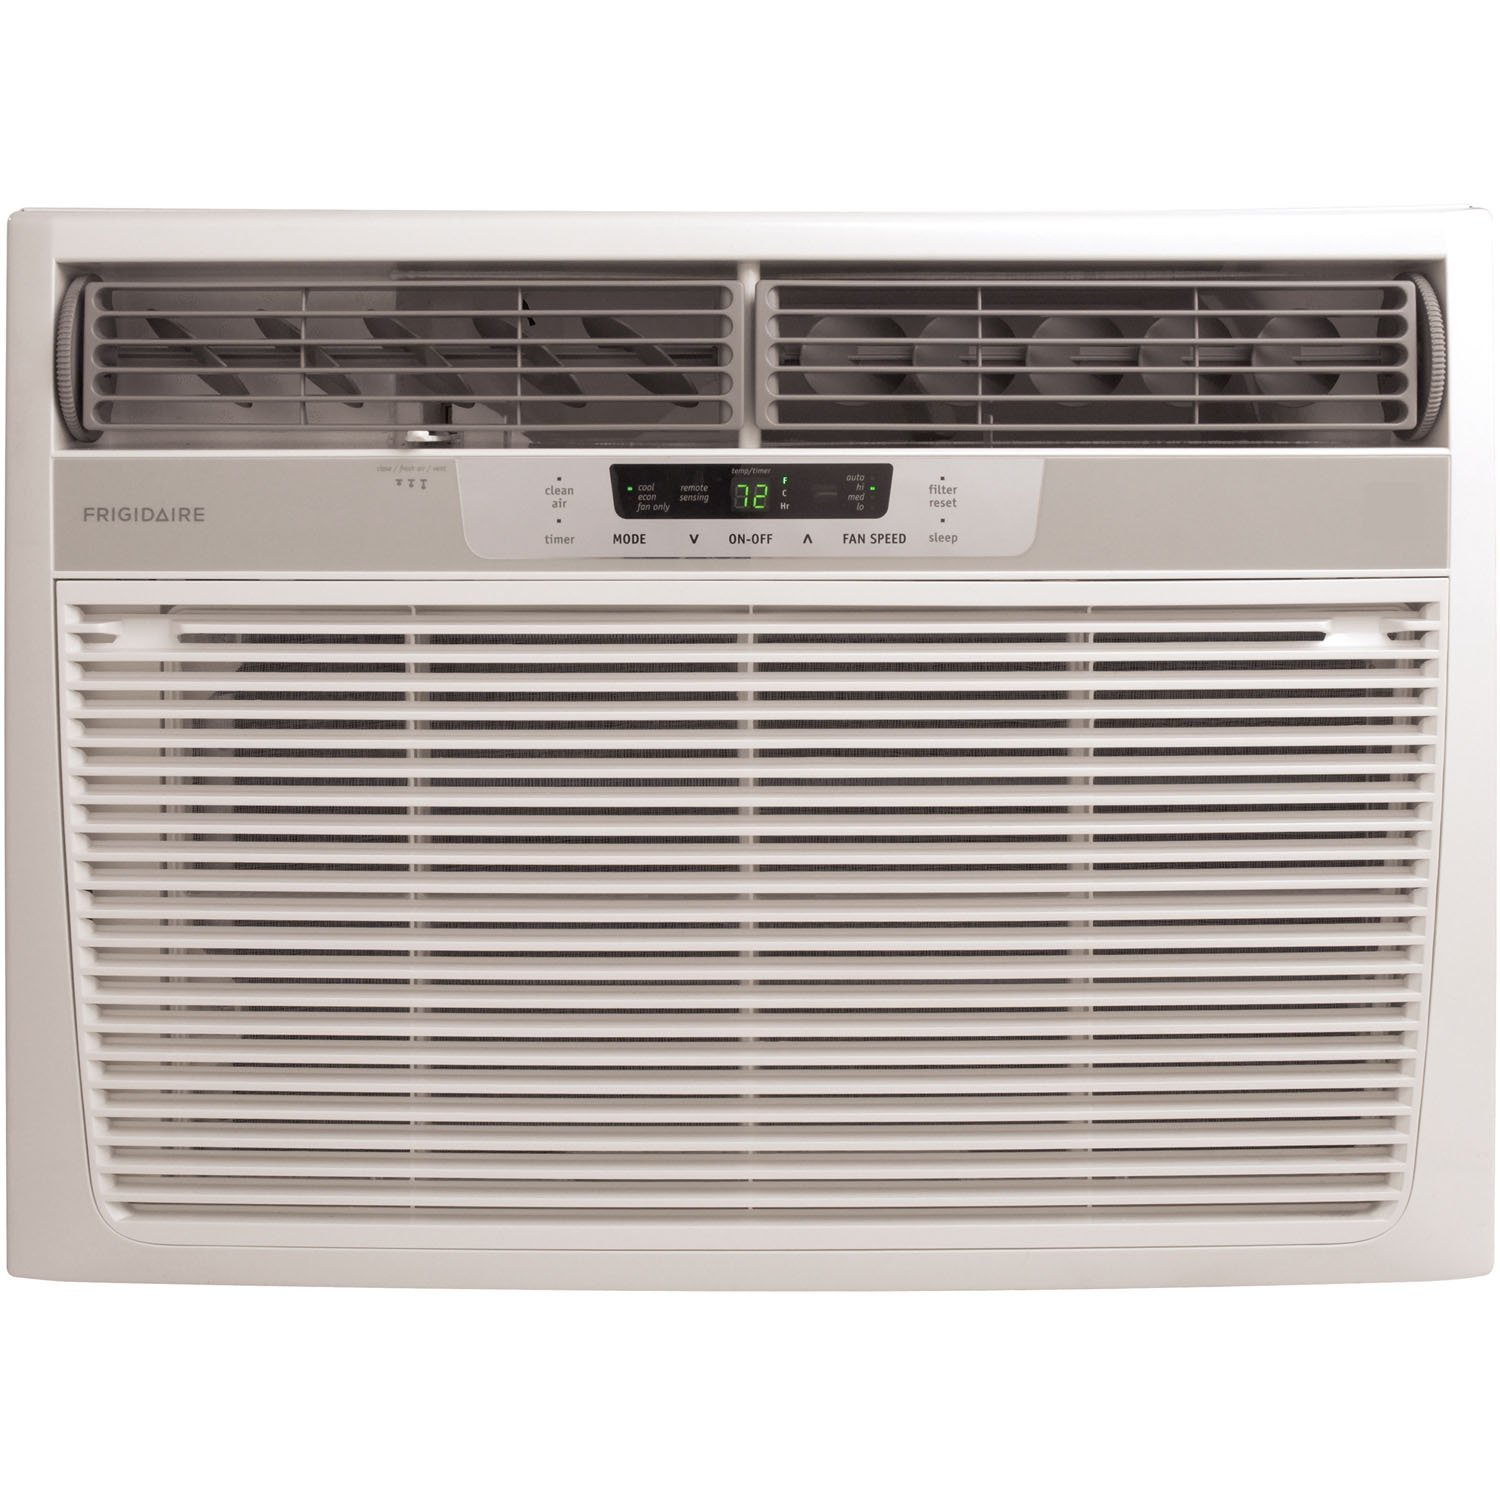 FRA156MT1 15 100 BTU Window Mounted Room Air Conditioner Review 2016 #4C683C